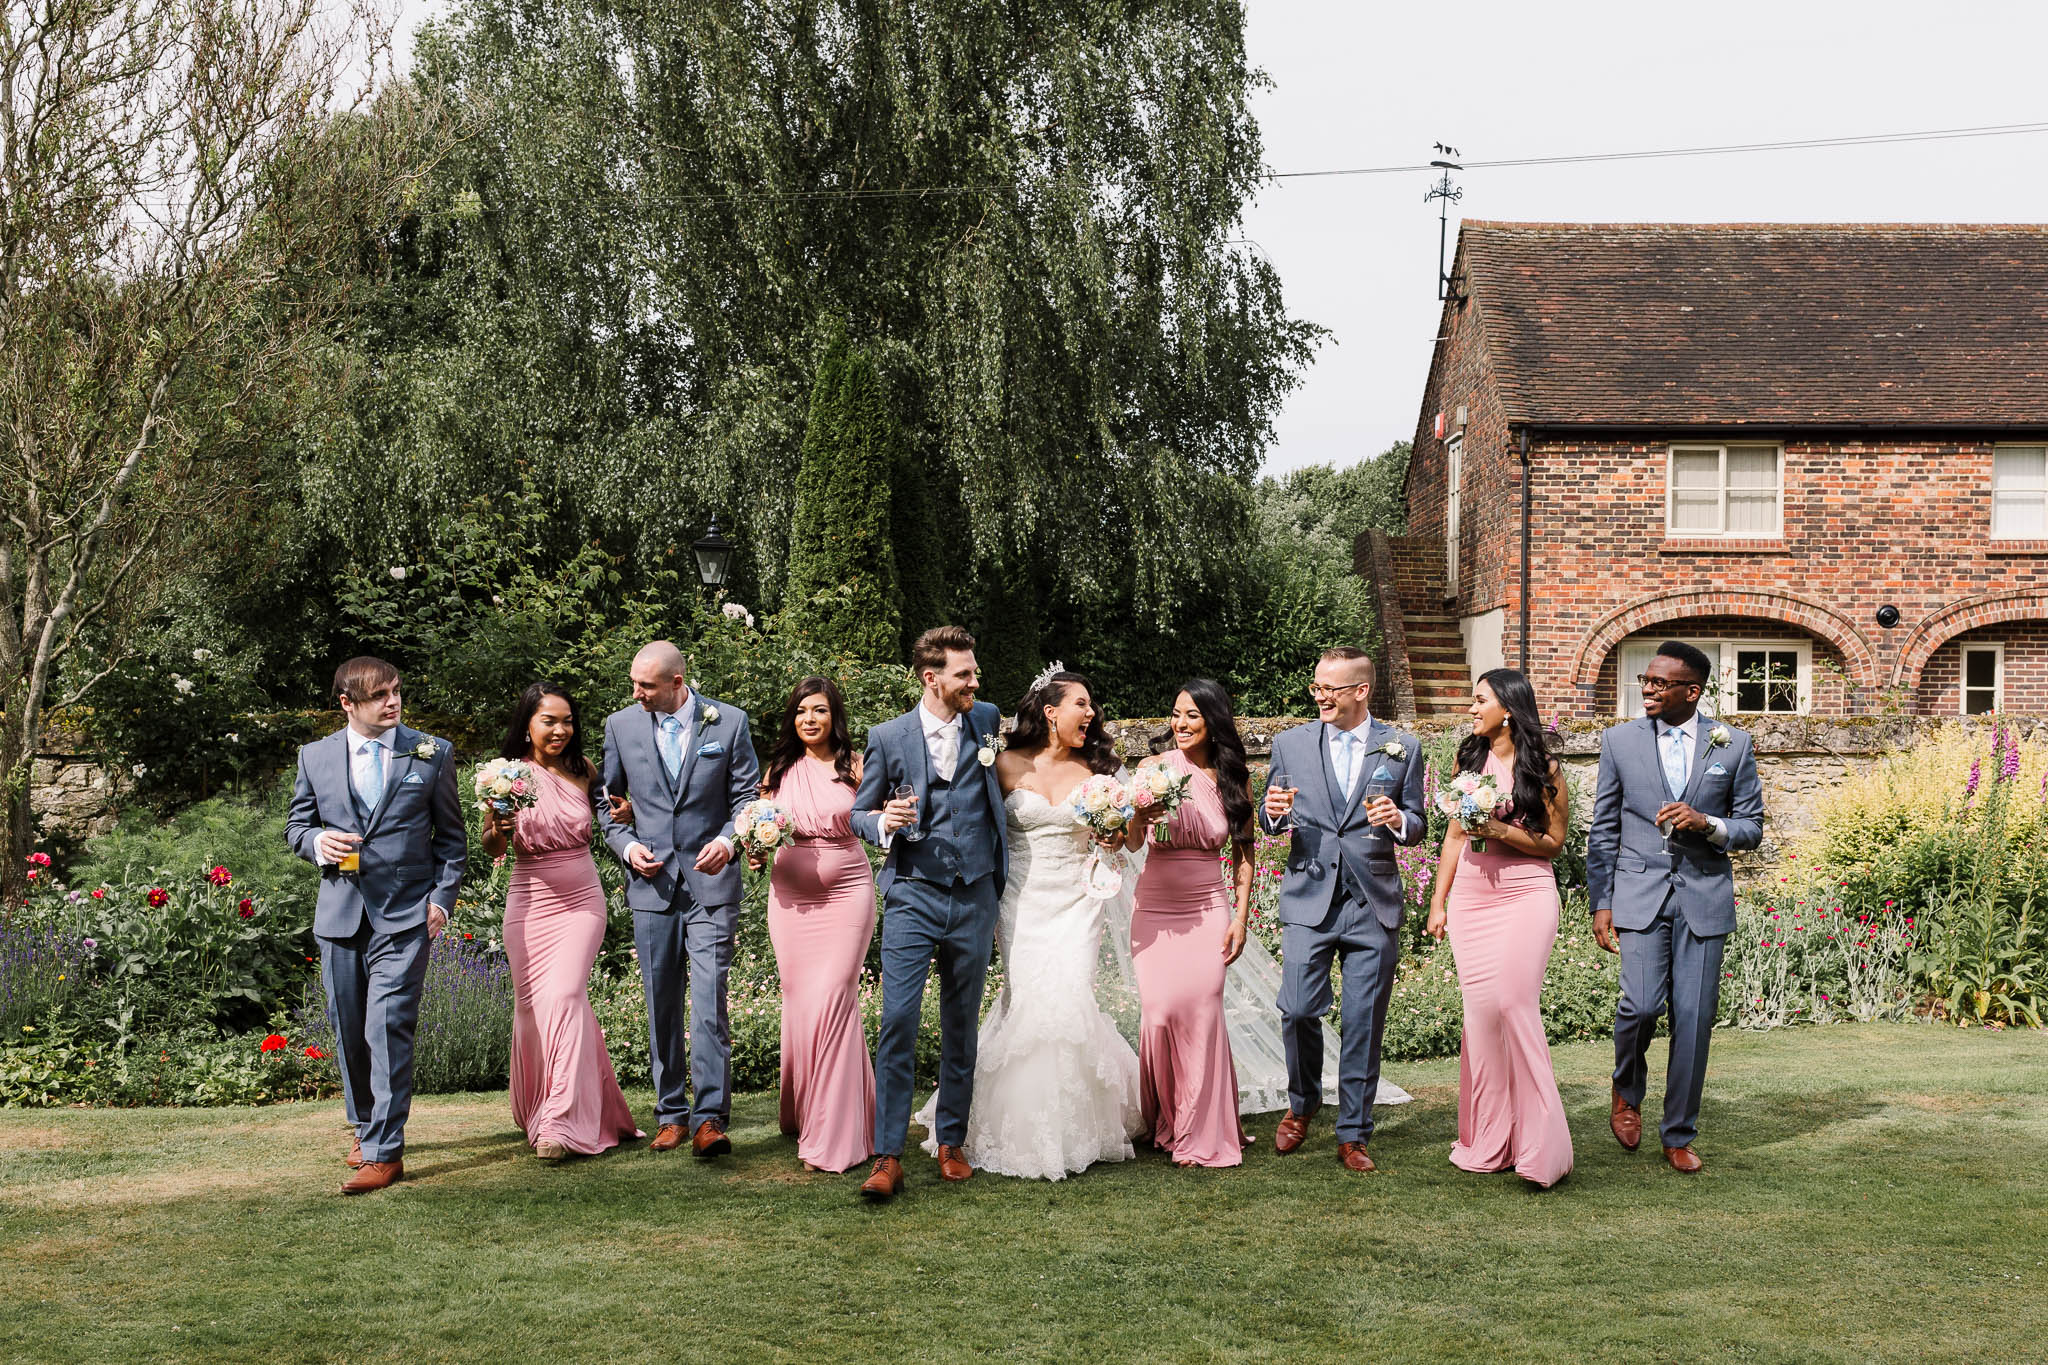 bridal party walking at brewerstreet farmhouse wedding